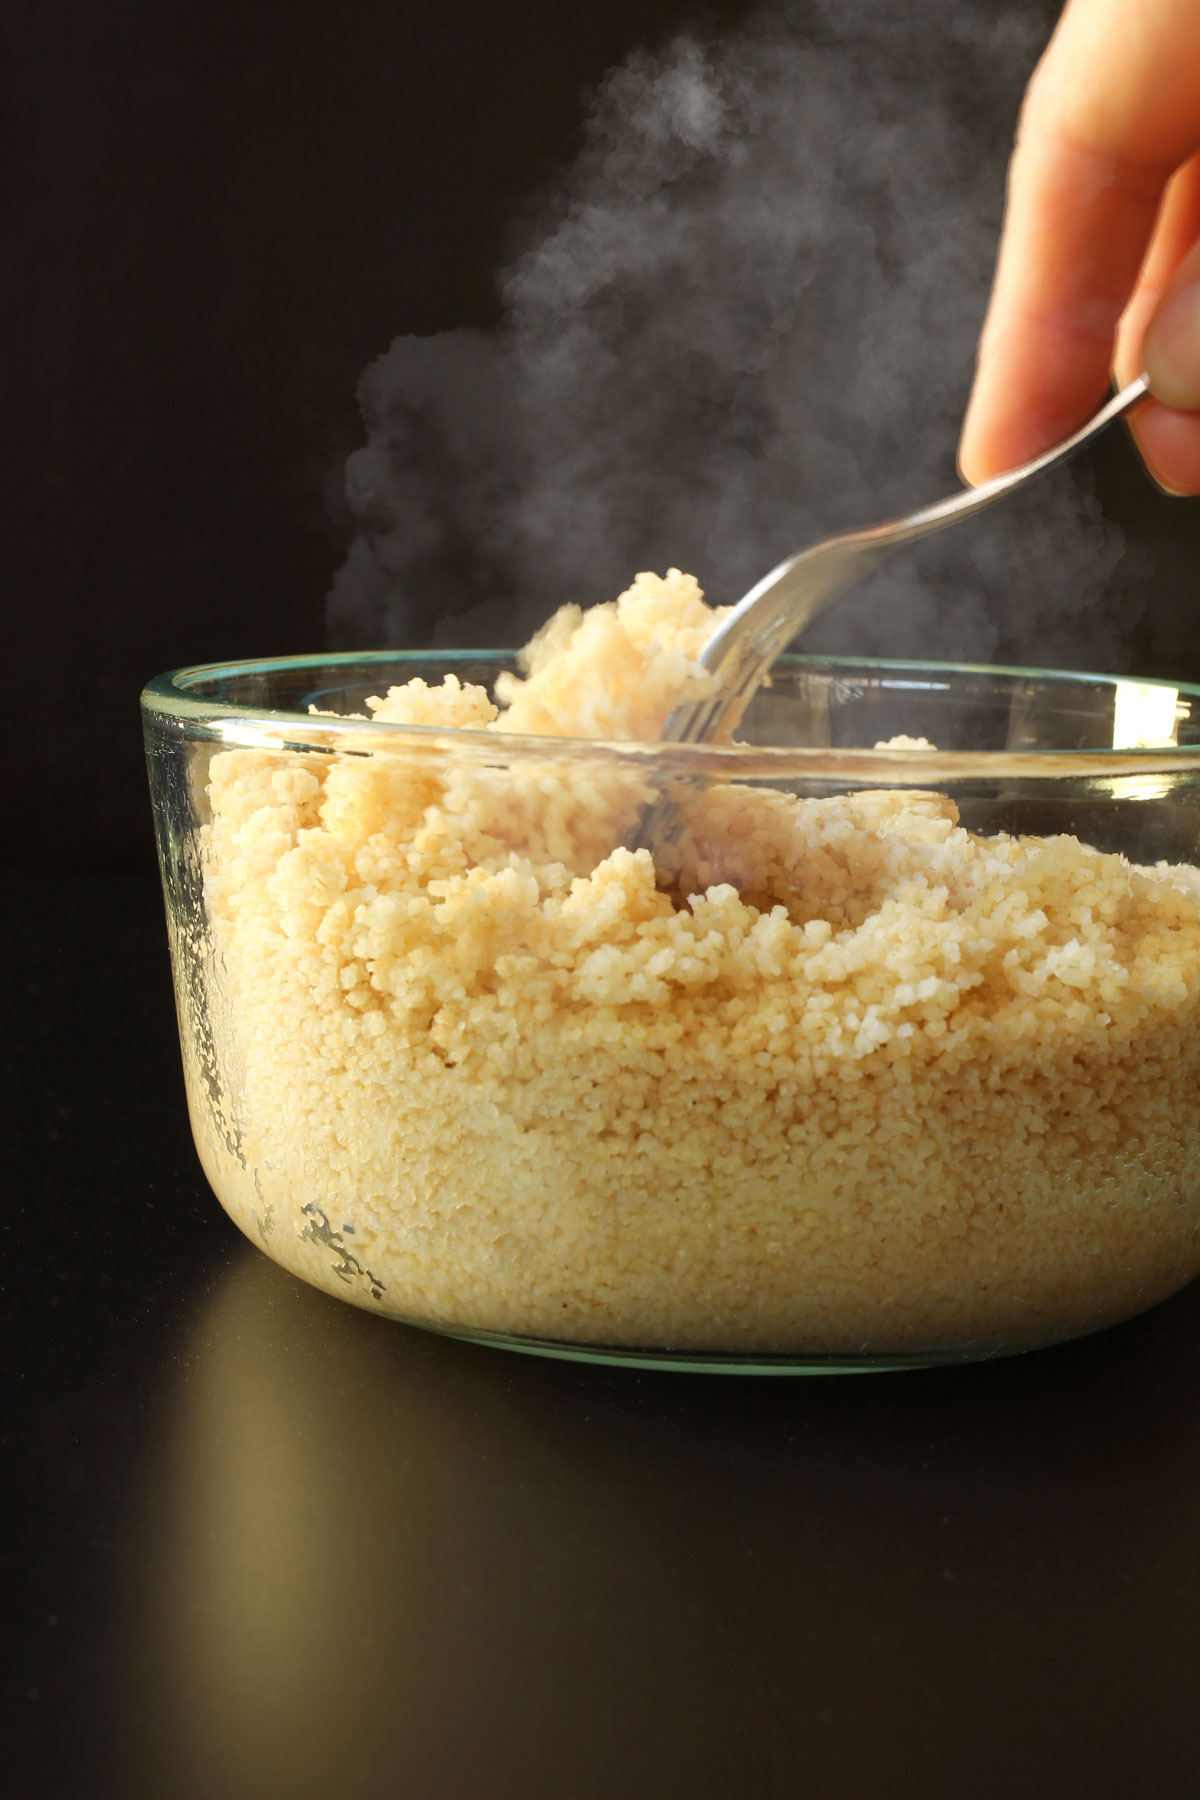 hand holding fork to break up cooked couscous in glass dish.